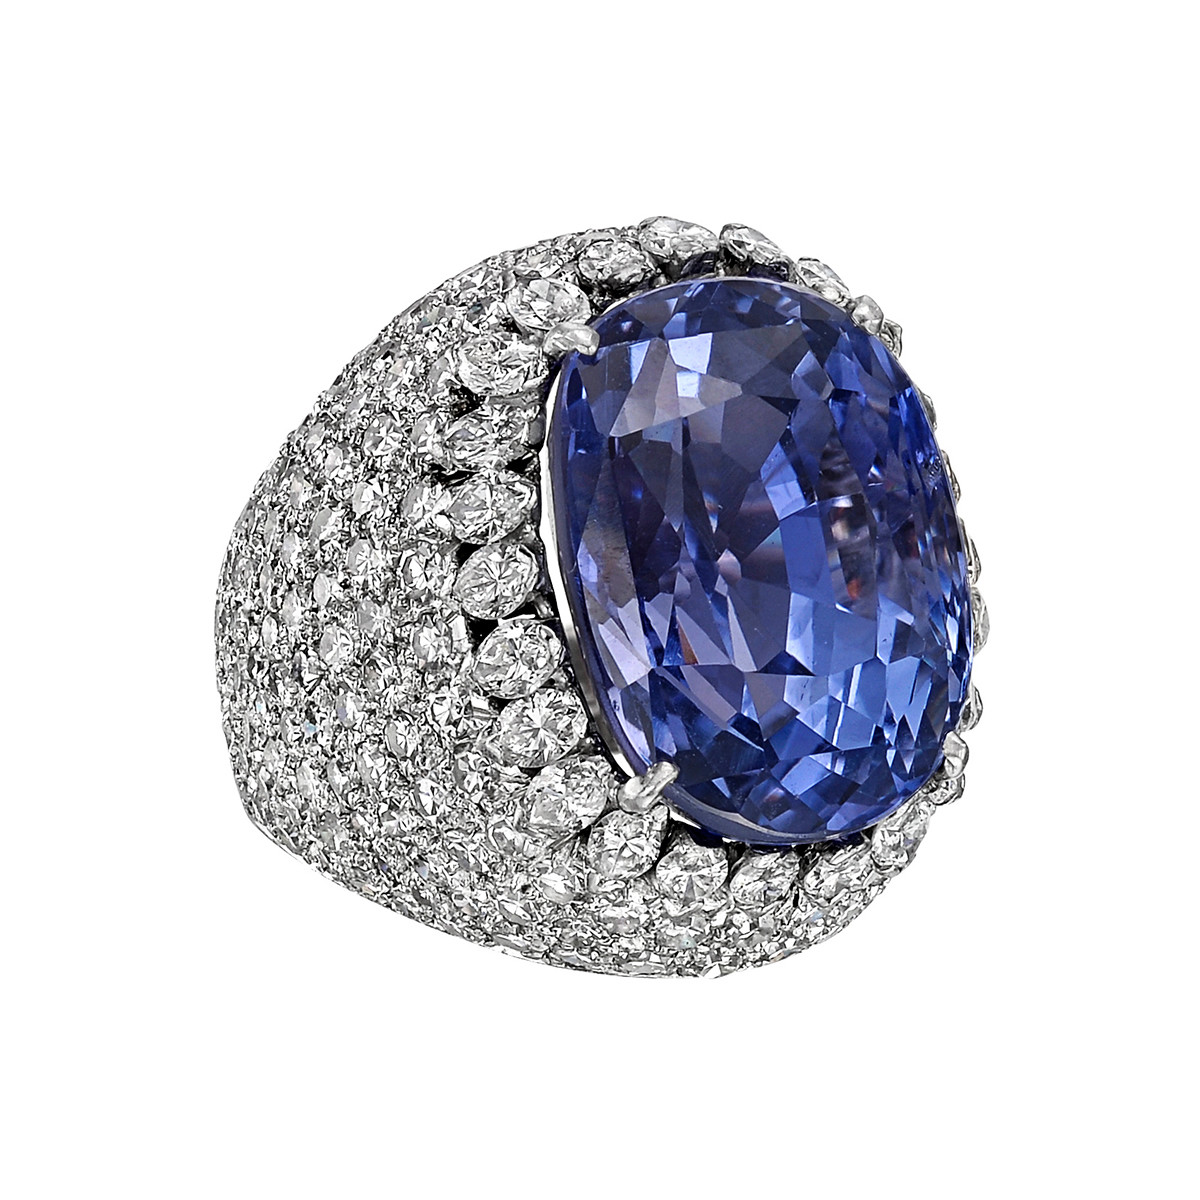 20.26ct No-Heat Ceylon Sapphire & Diamond Ring